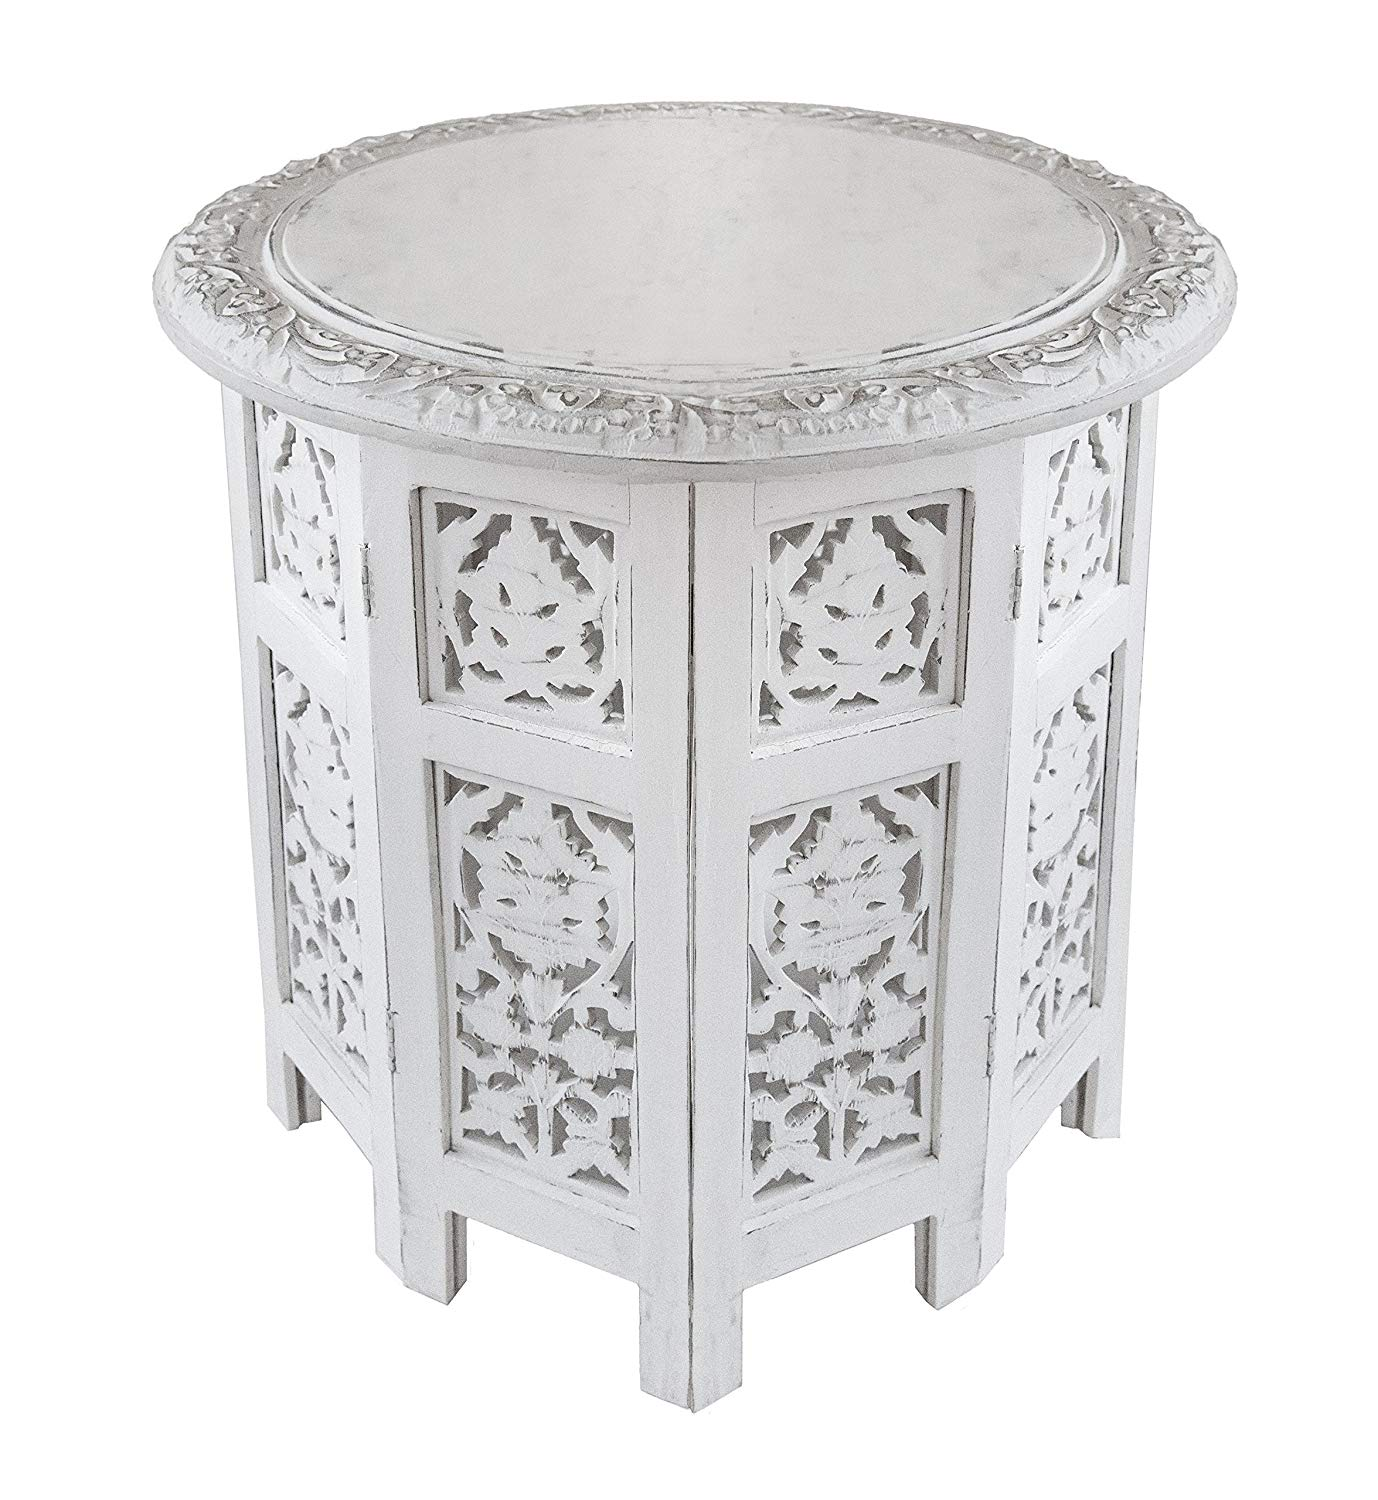 cotton craft jaipur solid wood handcrafted carved white accent table folding coffee antique inch round top high kitchen ikea wall mounted shelves wicker end tables glass